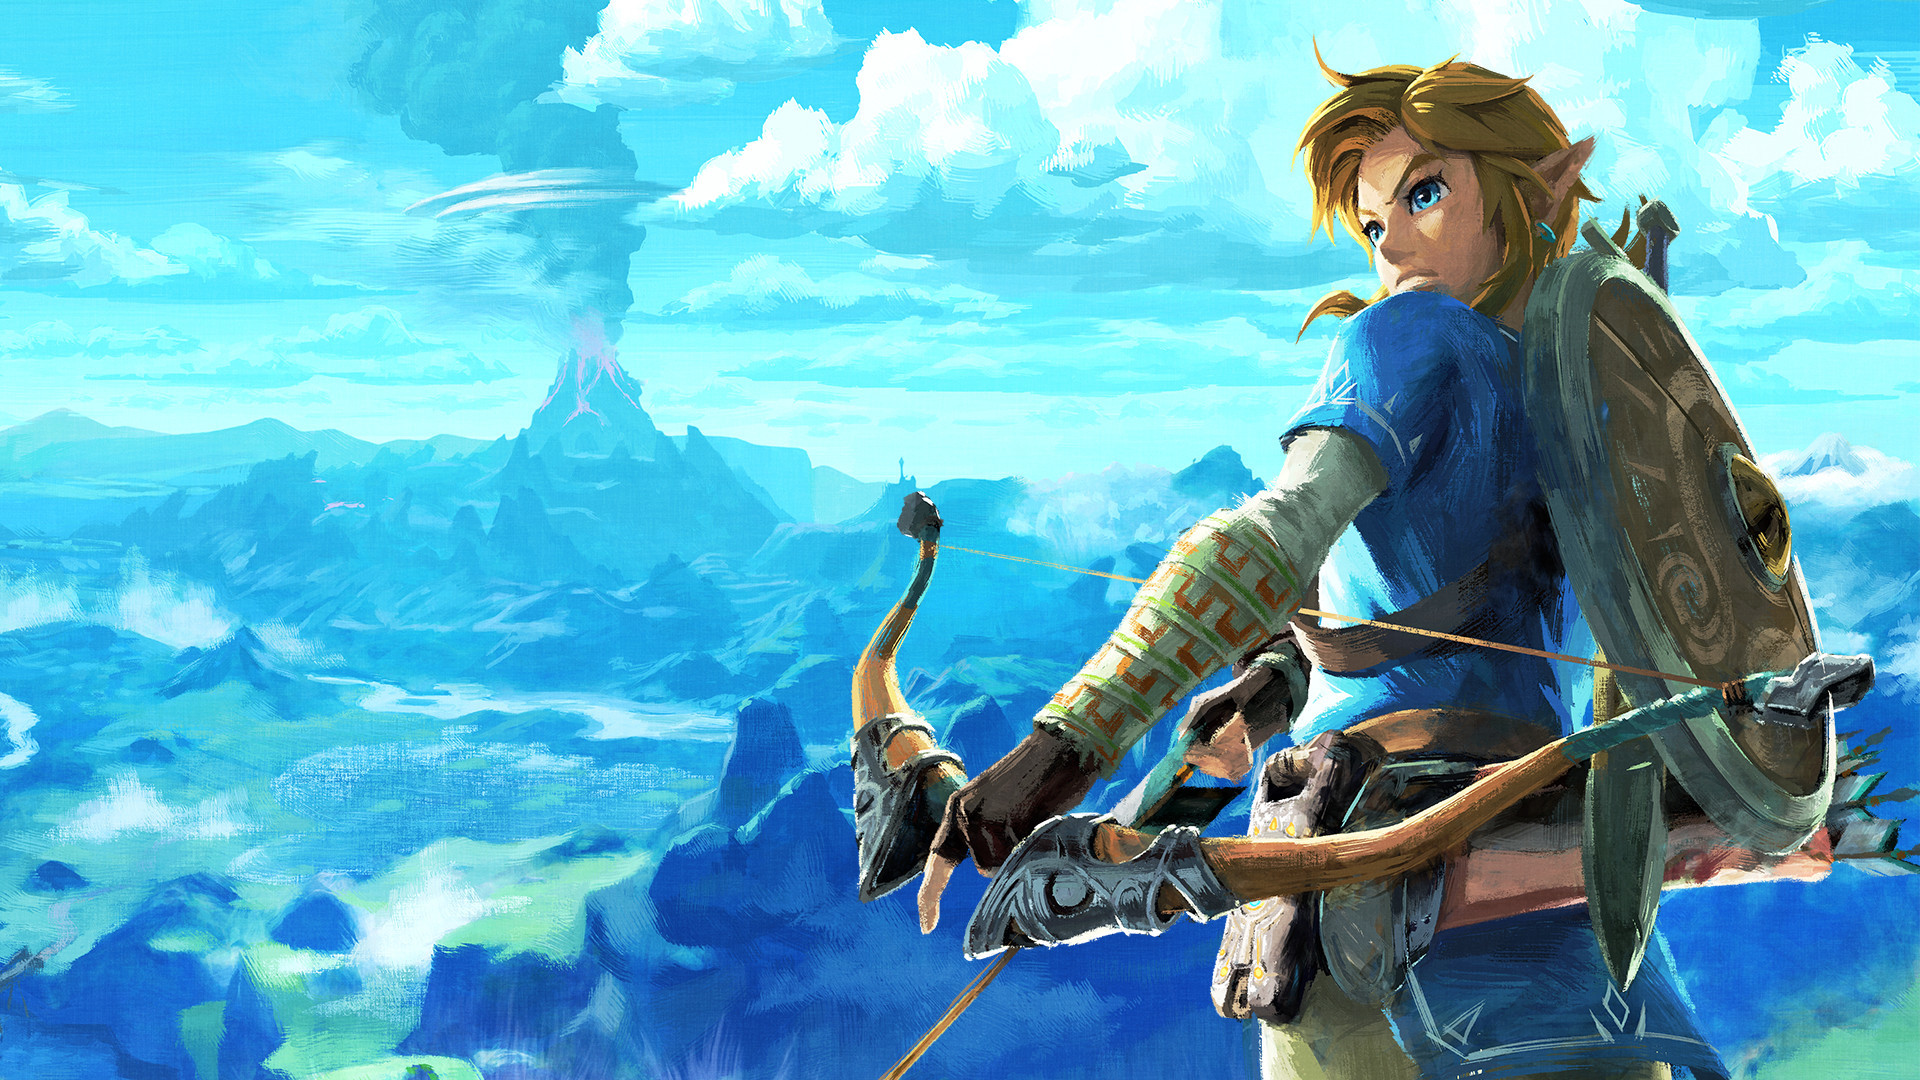 1920x1080  Master Sword - Zelda Breathe of the Wild #wallpaper